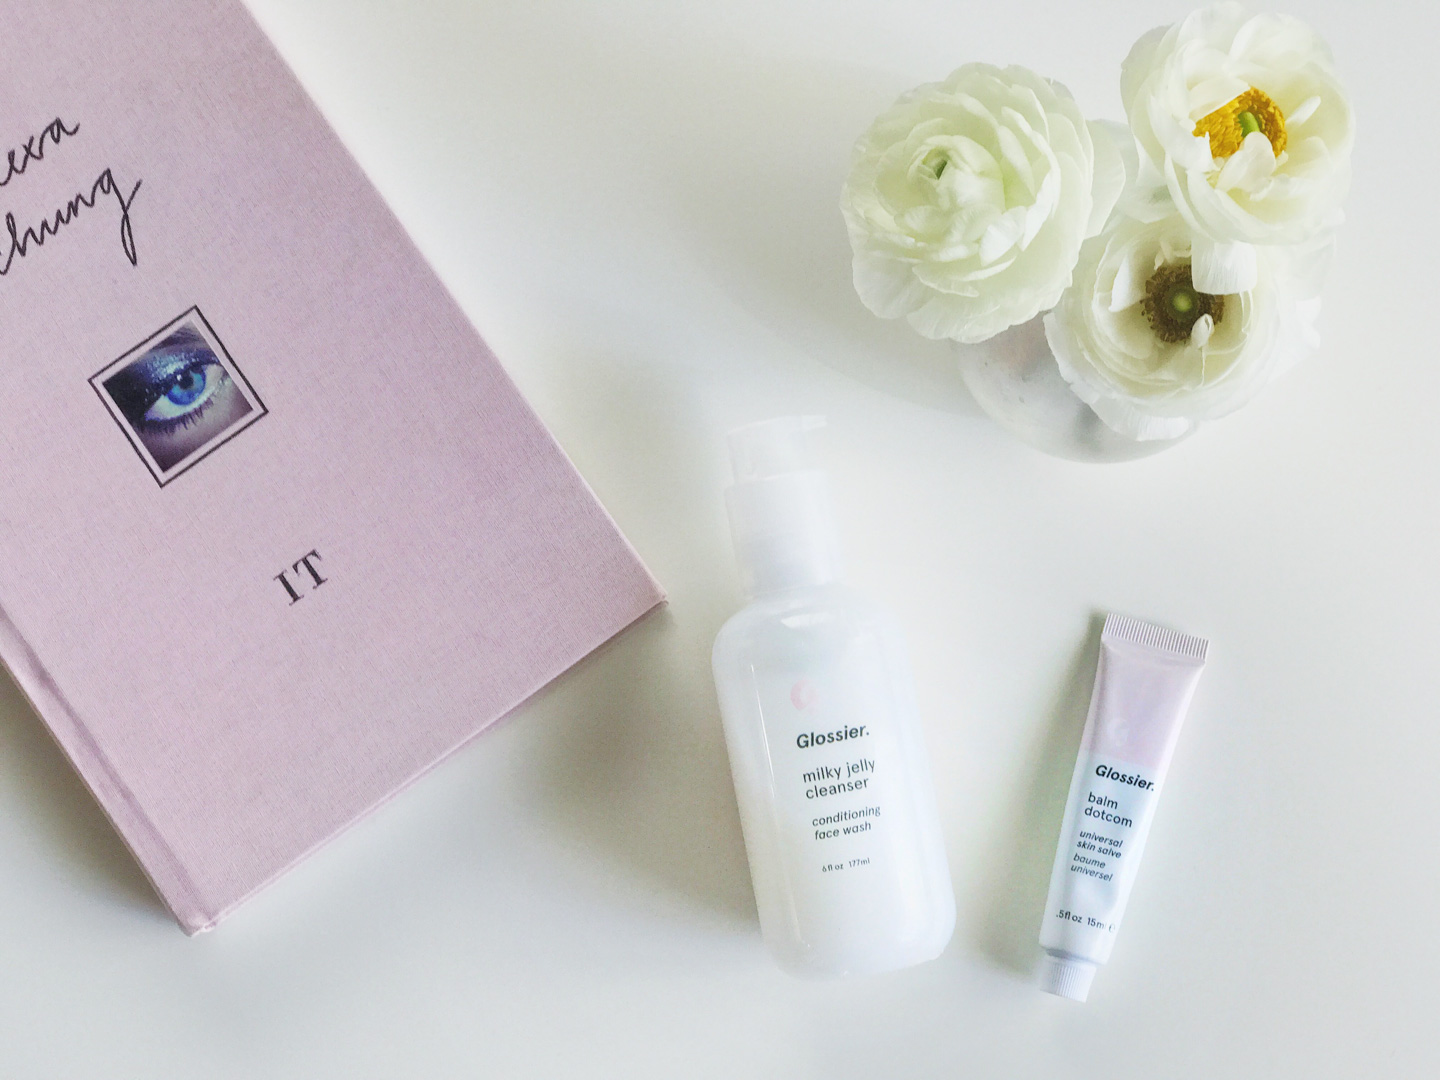 Glossier Milk Jelly Cleanser and Balm Dotcom